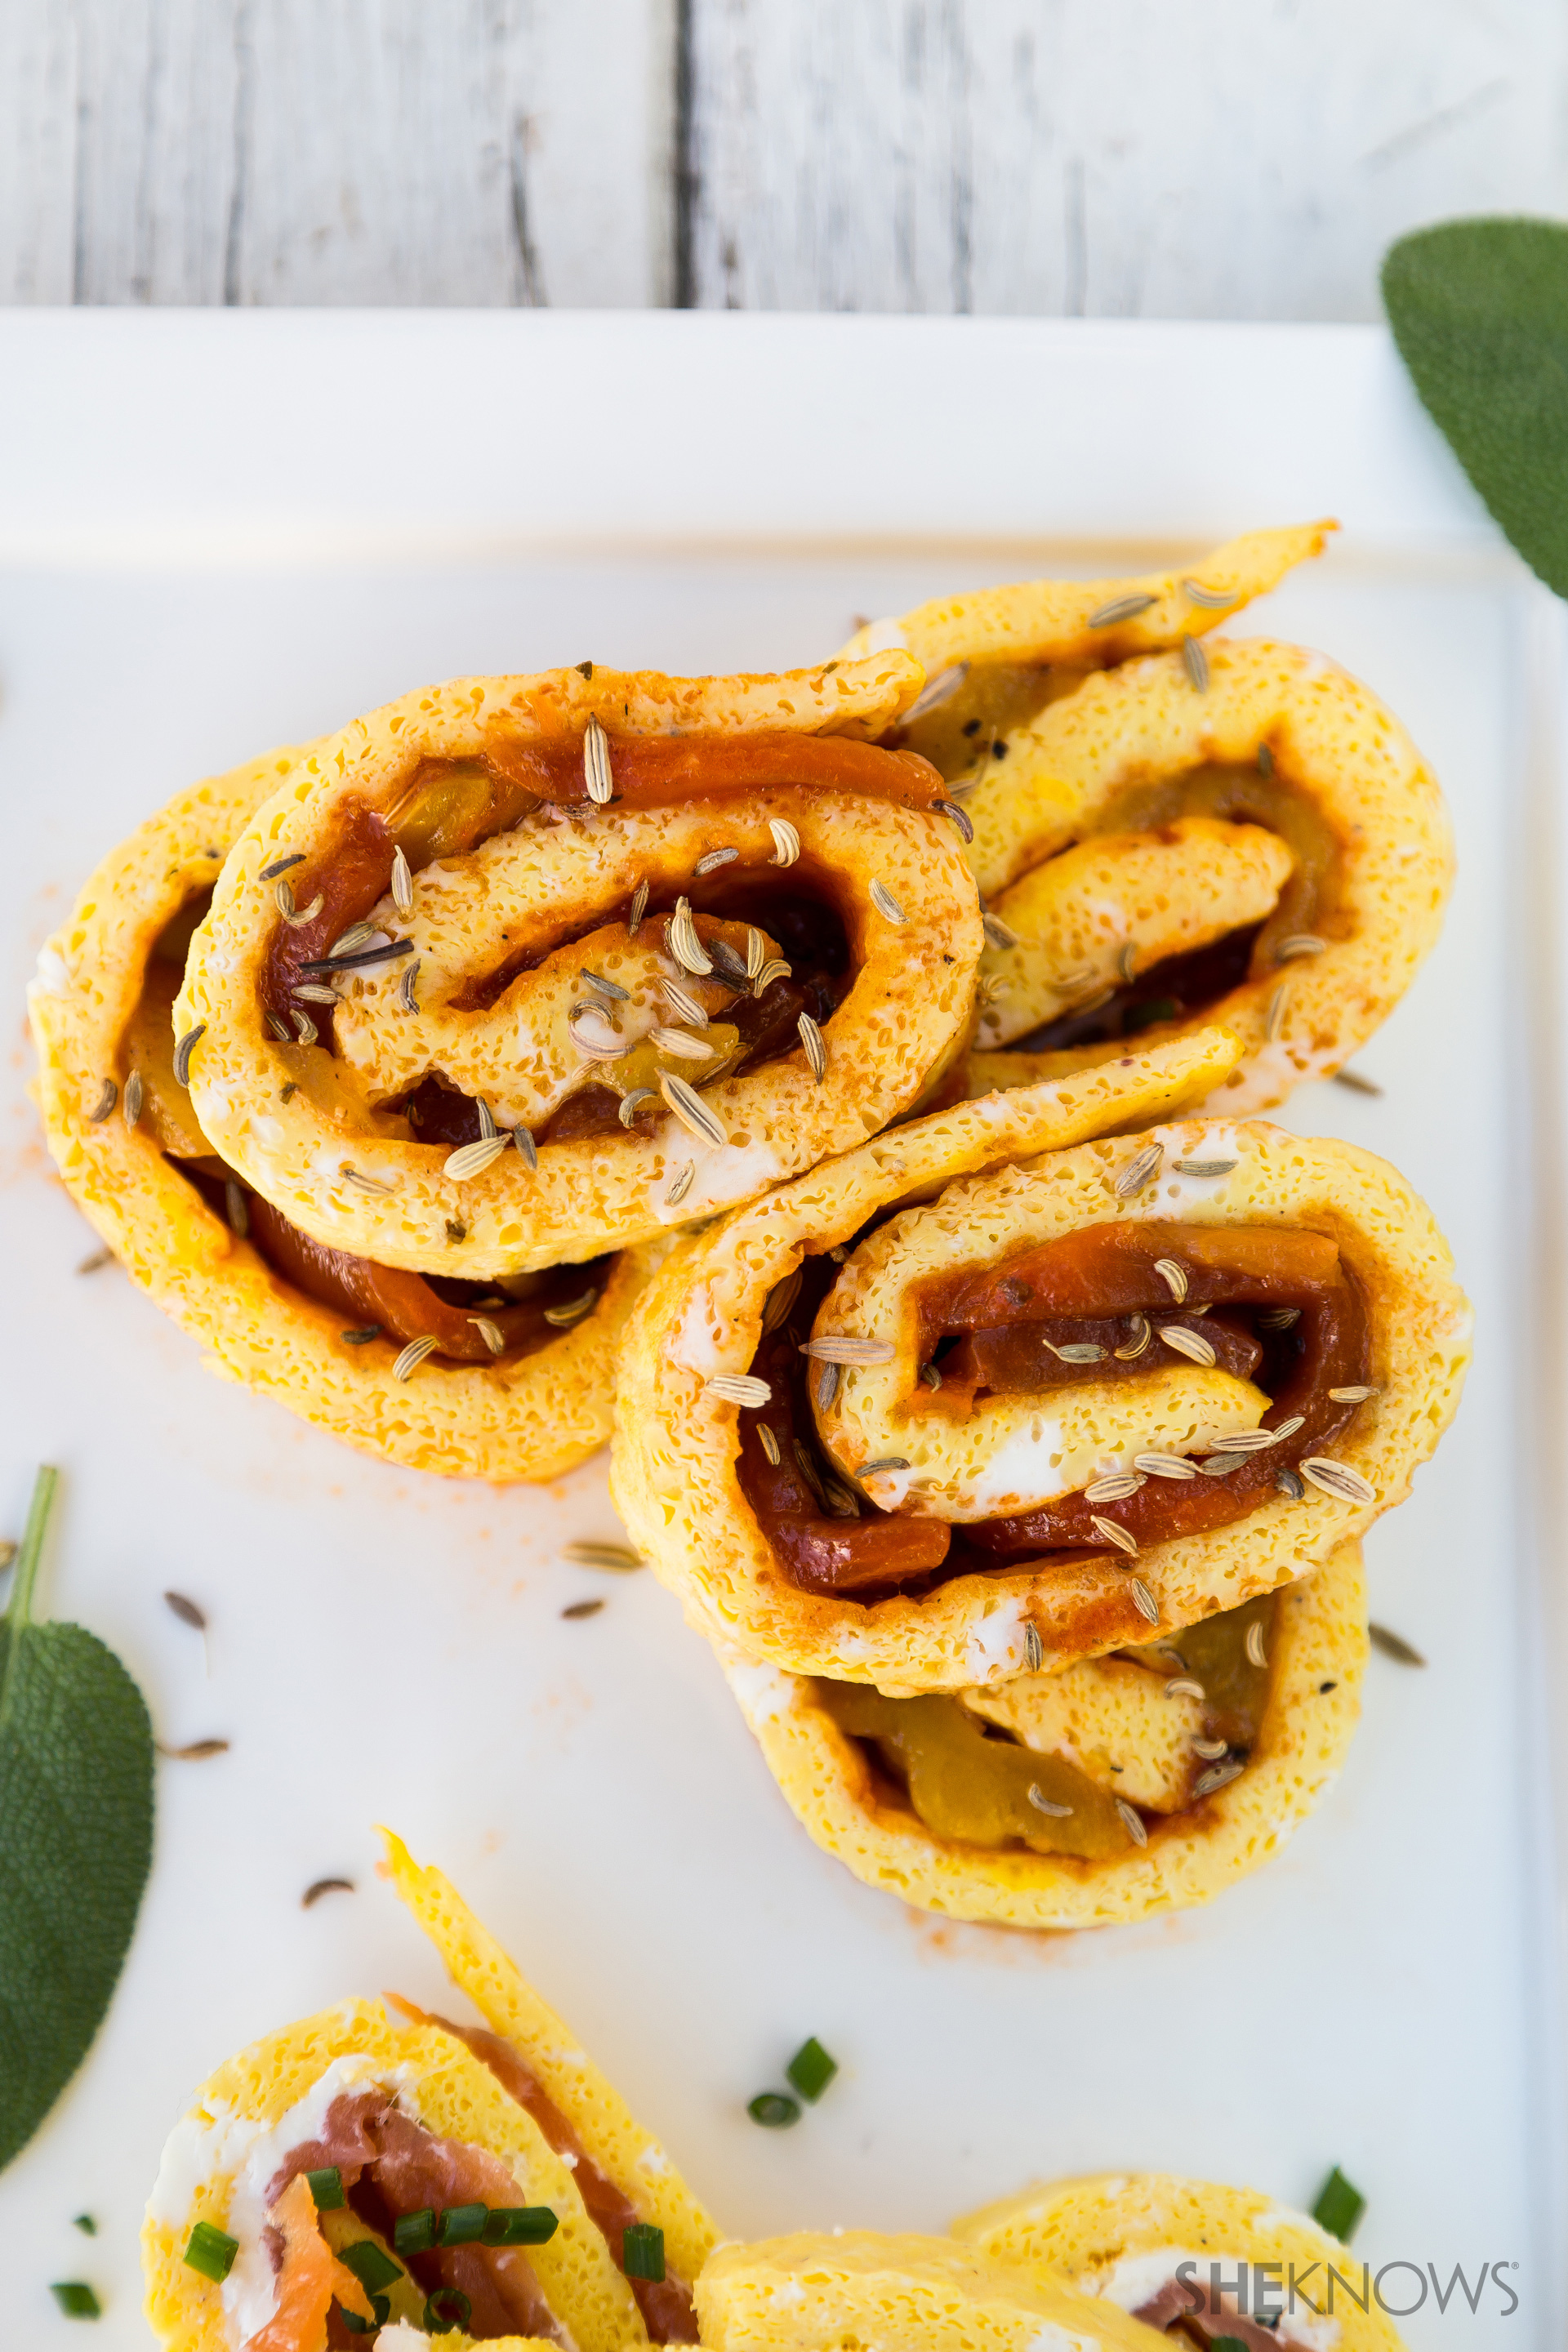 Harissa and grilled peppers frittata roll-up recipe